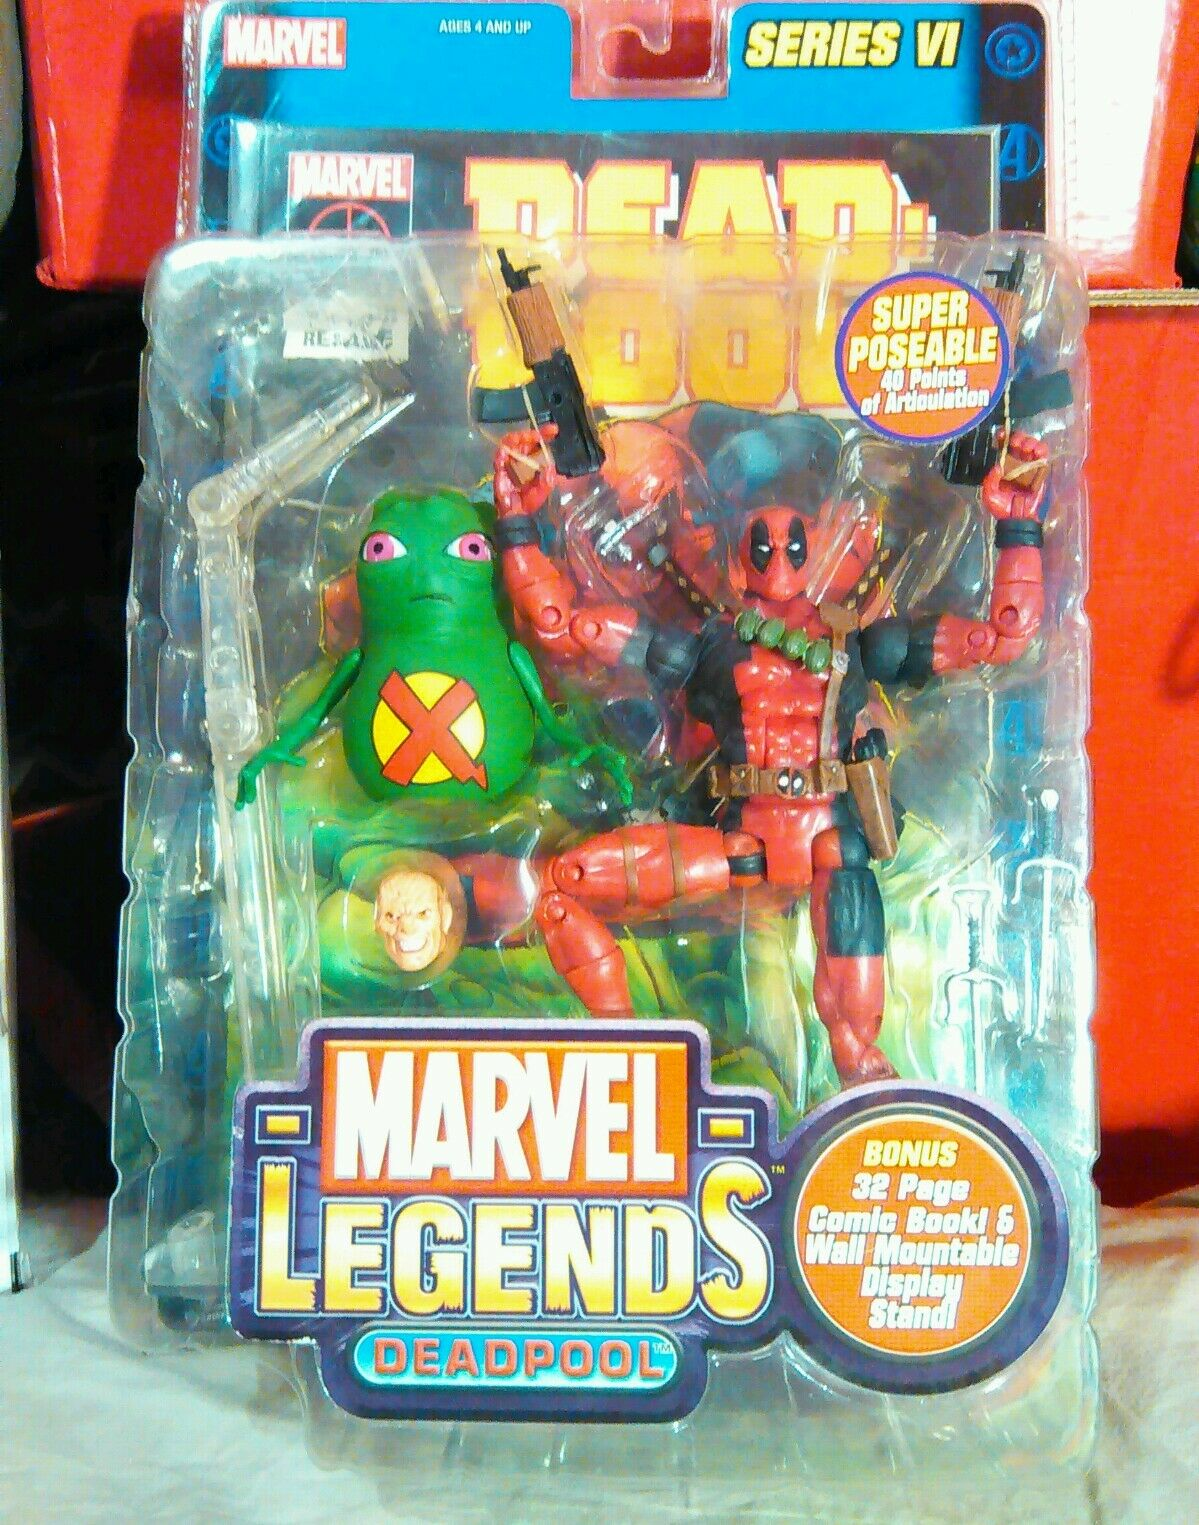 DEADPOOL series VI 6 figure authentic Marvel Legends TOYBIZ SEALED